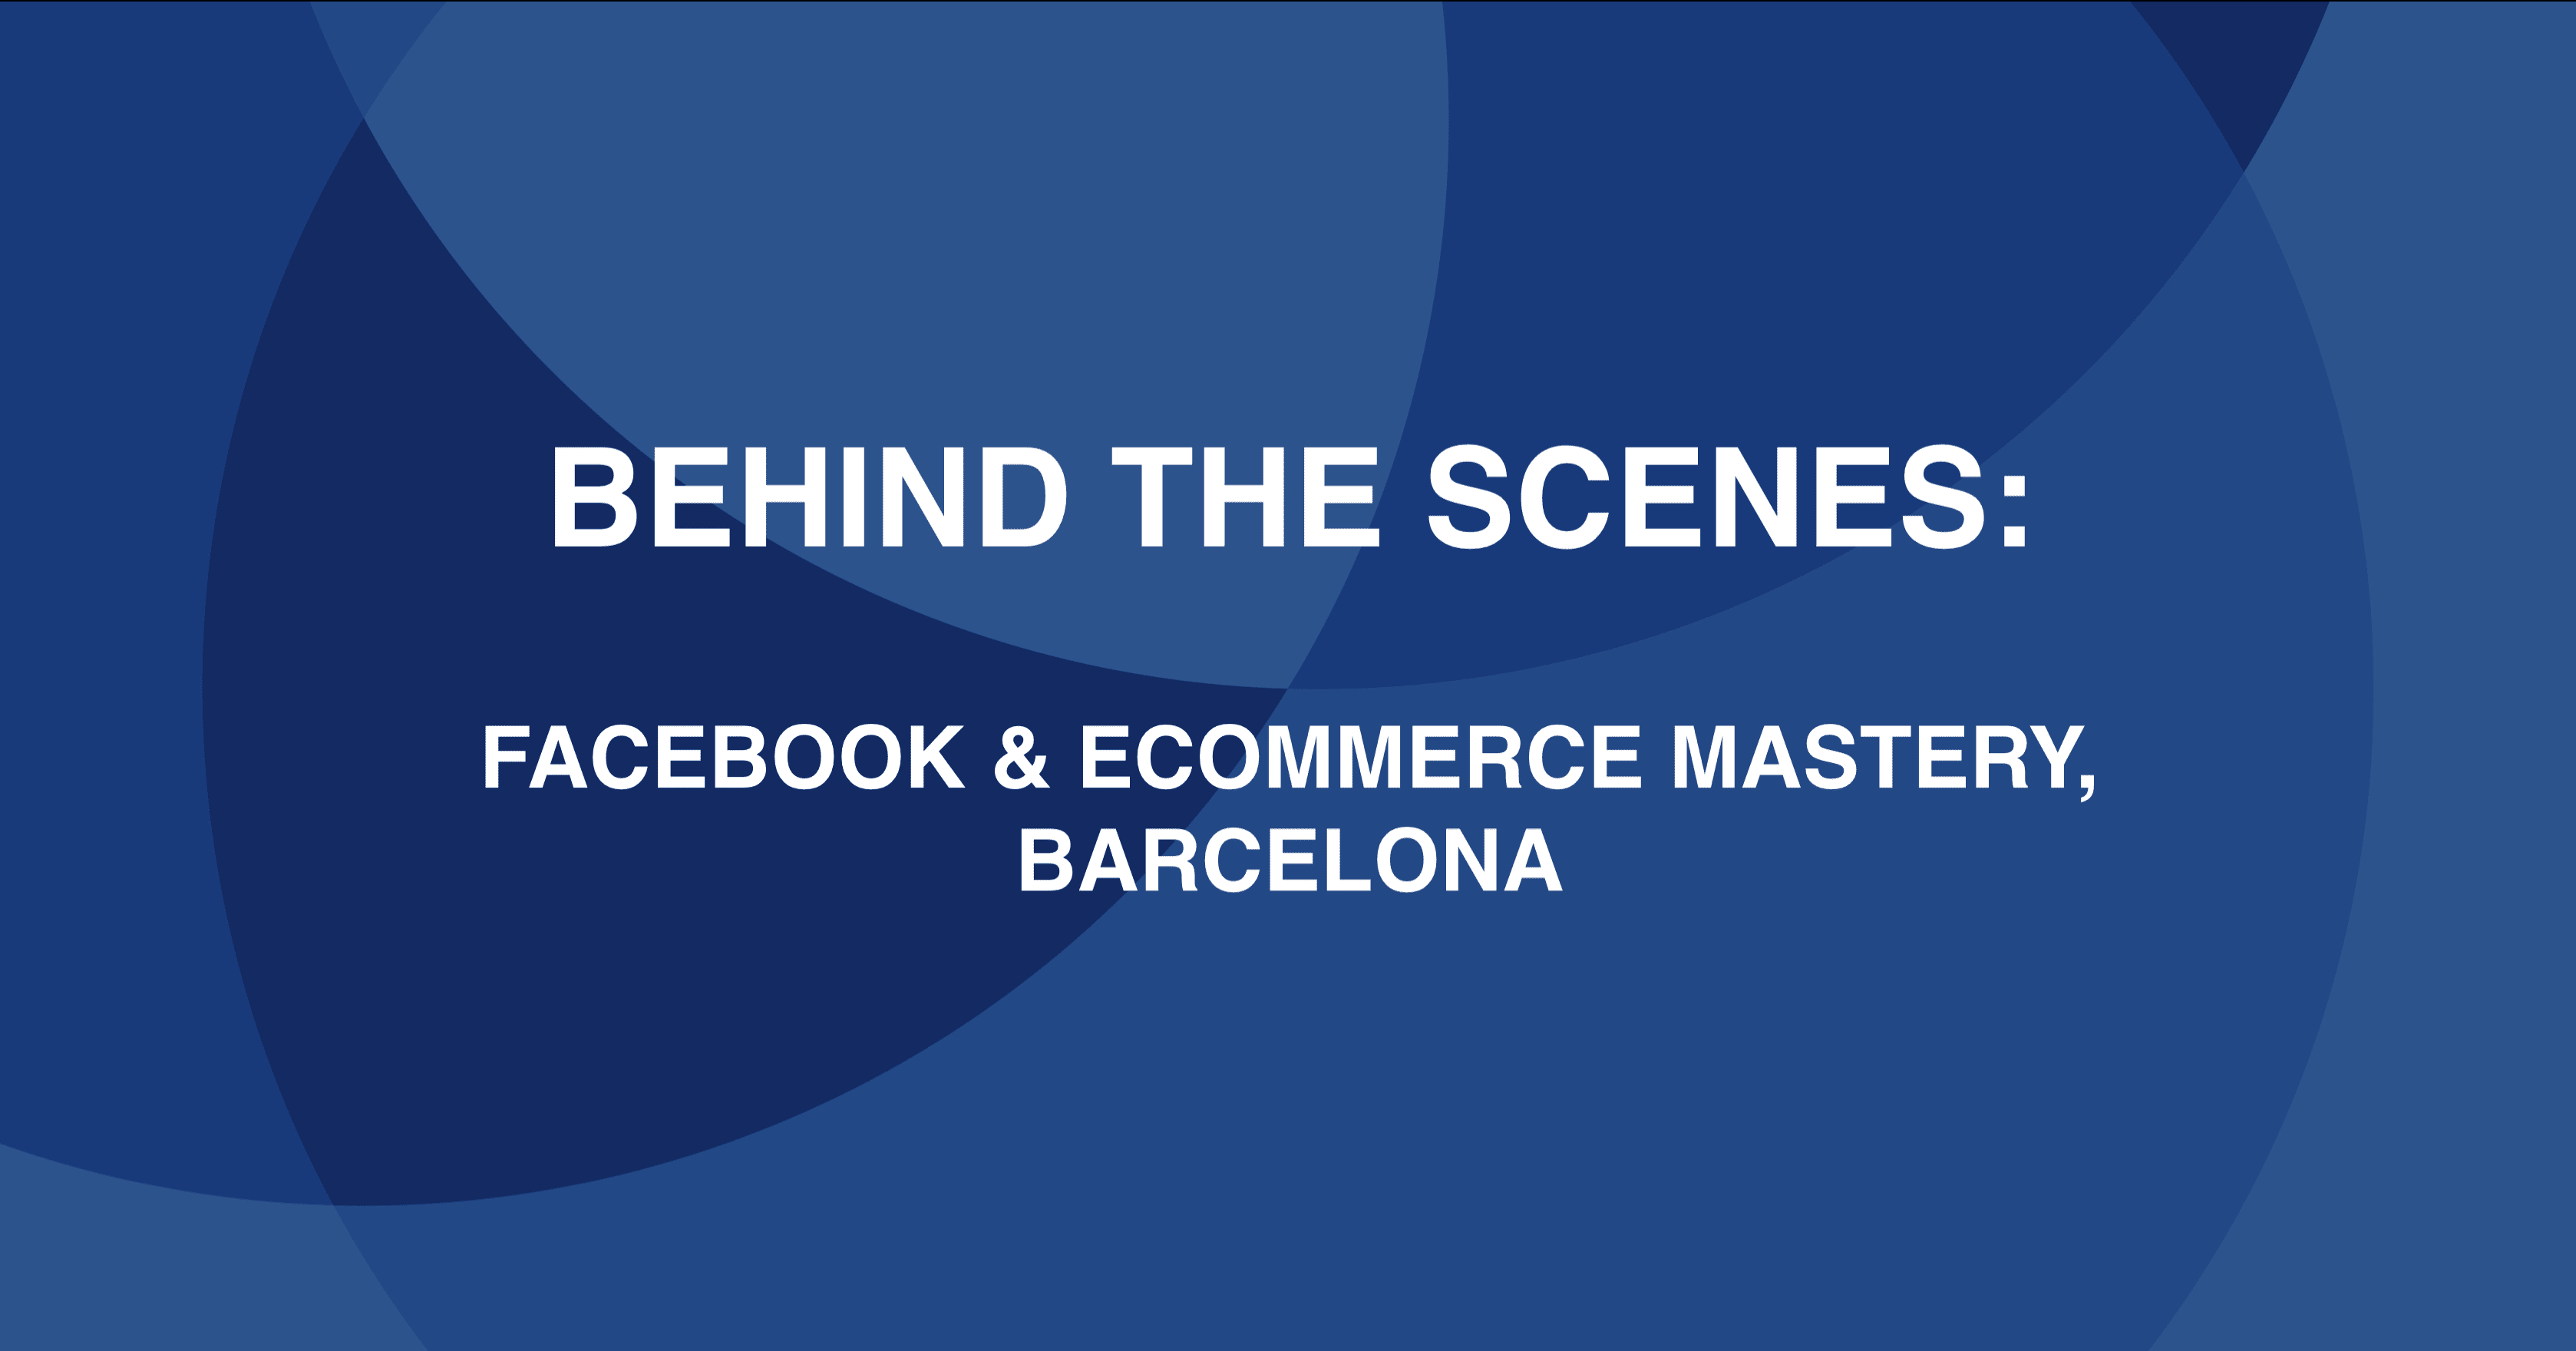 Facebook and Ecommerce Mastery, Barcelona